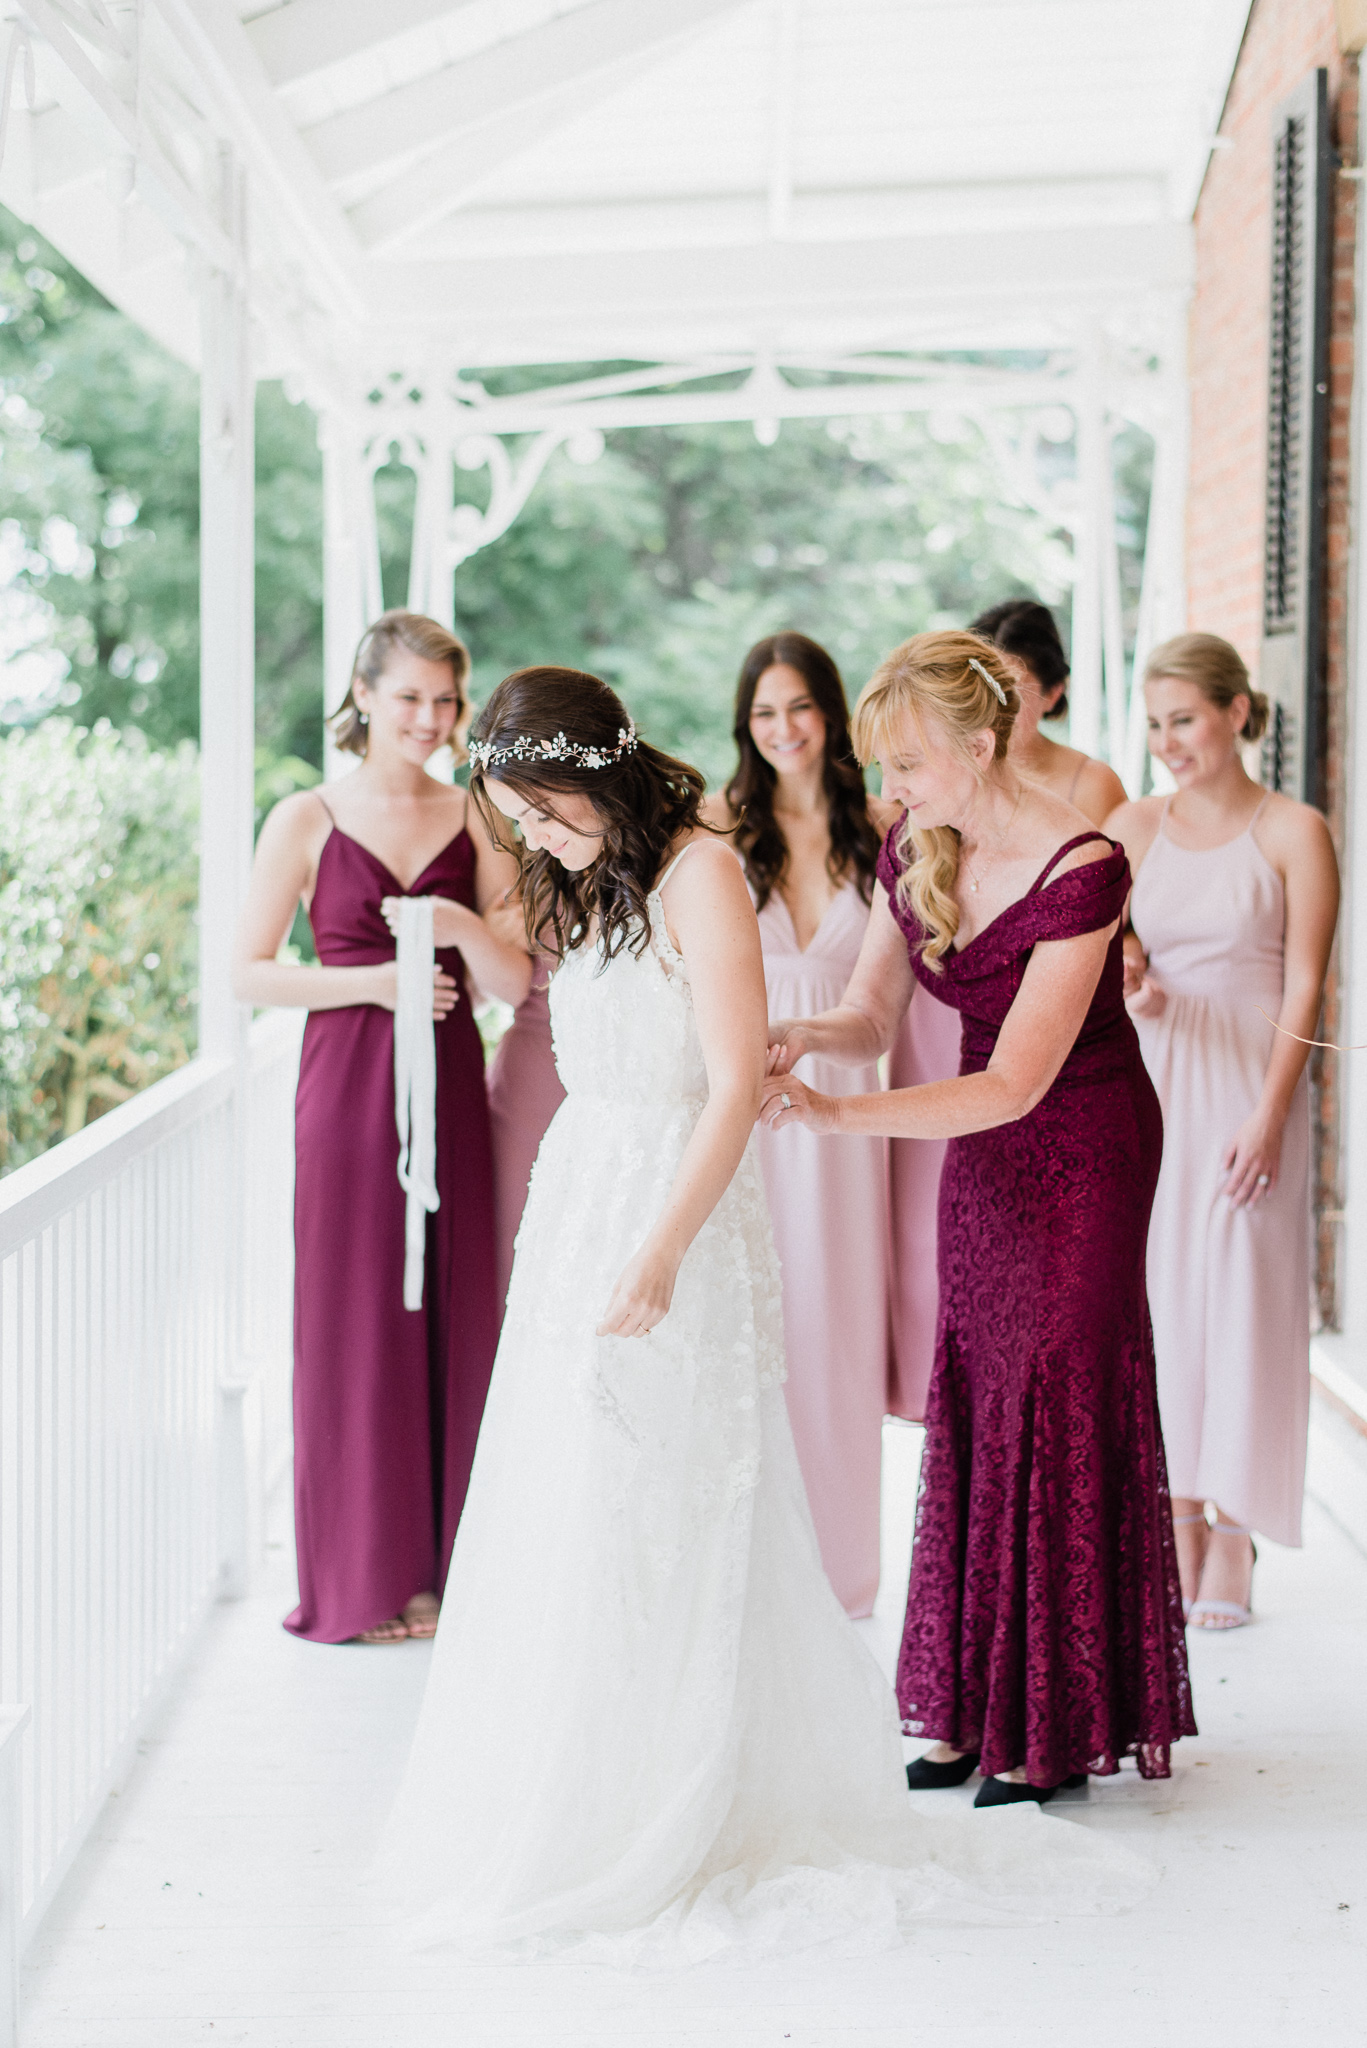 Mismatched Park & Fifth Co bridesmaids dresses by Jenn Kavanagh Photography